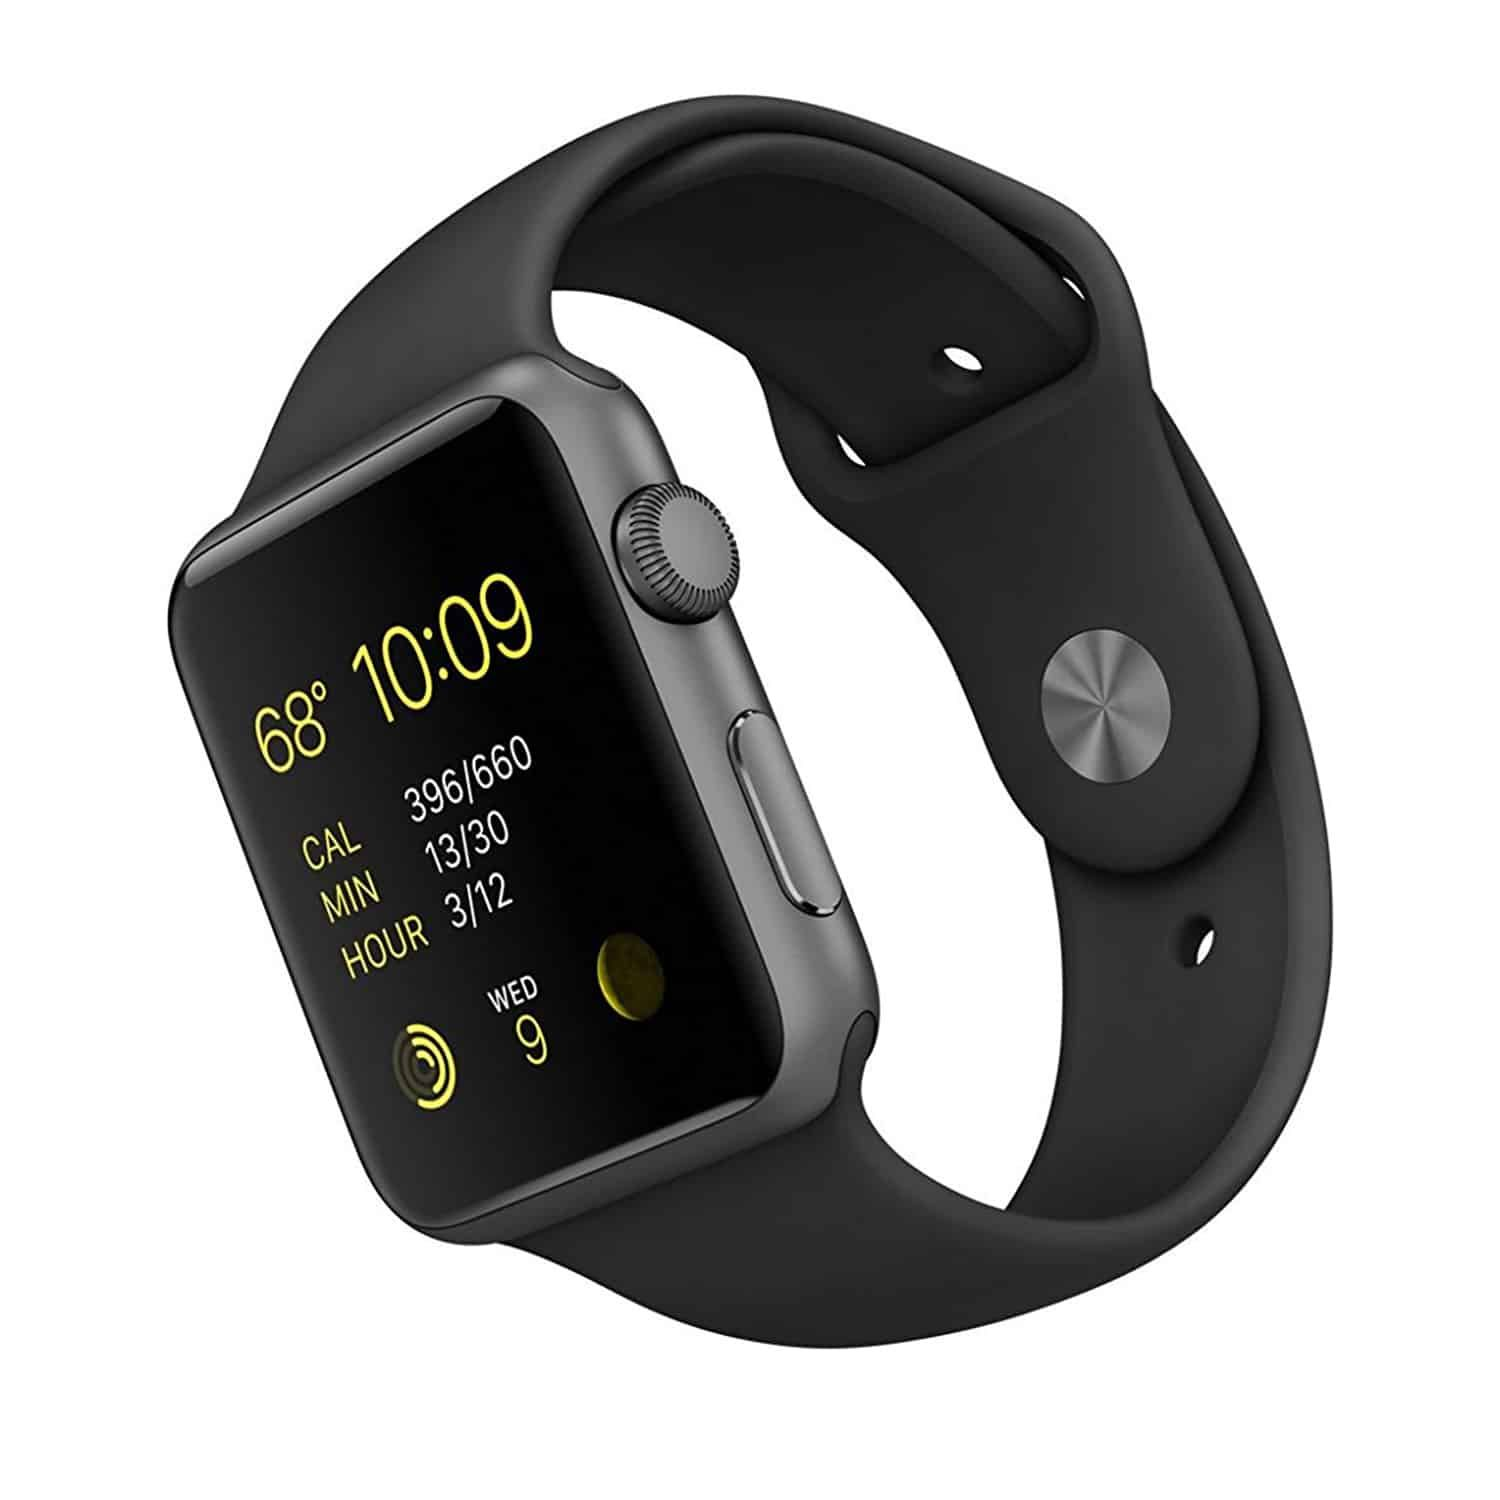 Top 10 Best Golf GPS in 2020 Reviews Apple watch, Apple